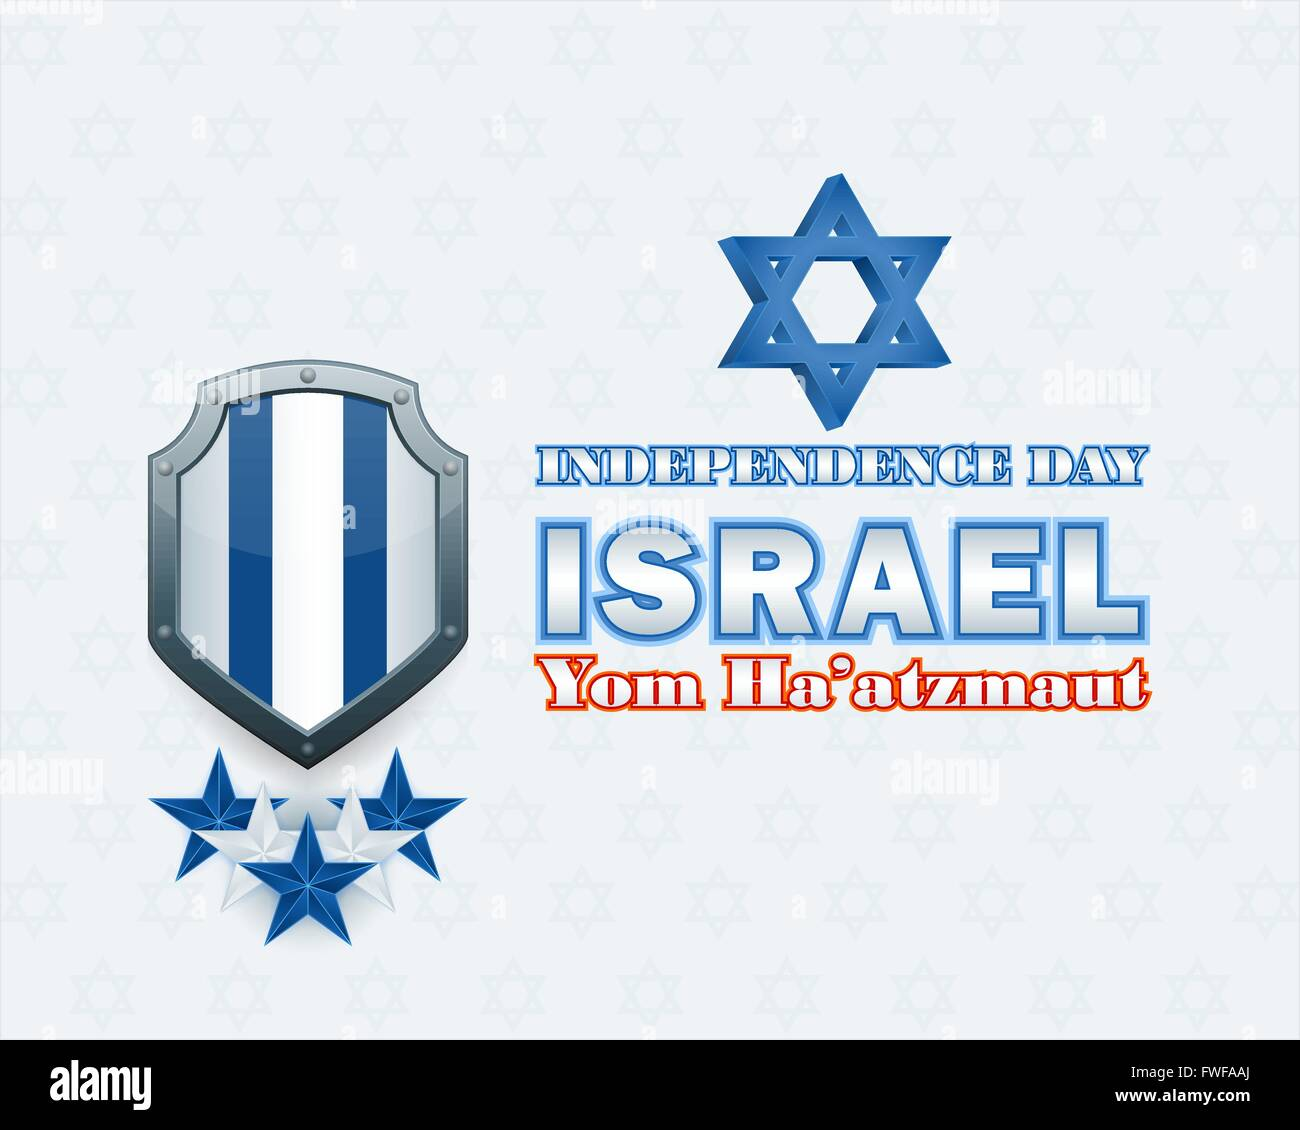 Yom Ha'atzmaut from Hebrew language as Independence day; National Celebration of Israel design background with - Stock Image